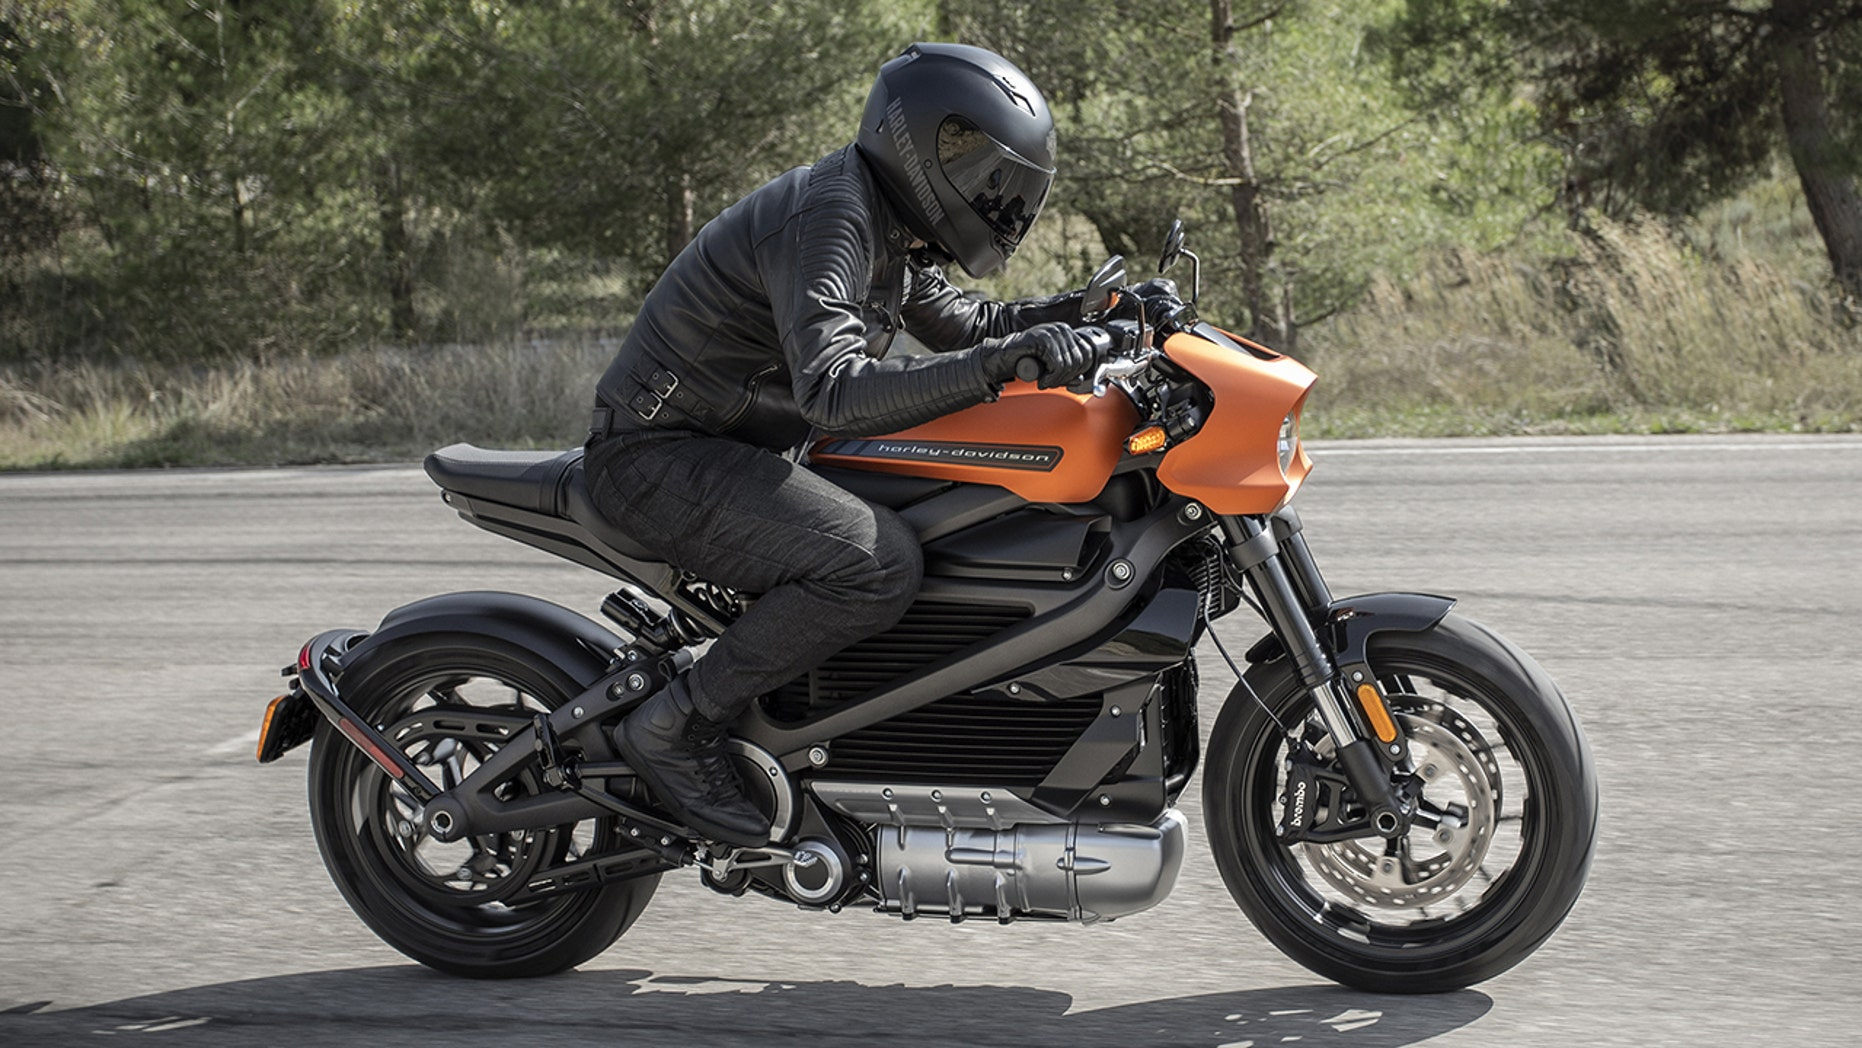 Harley-Davidson just made its first electric motorcycle available for pre-order